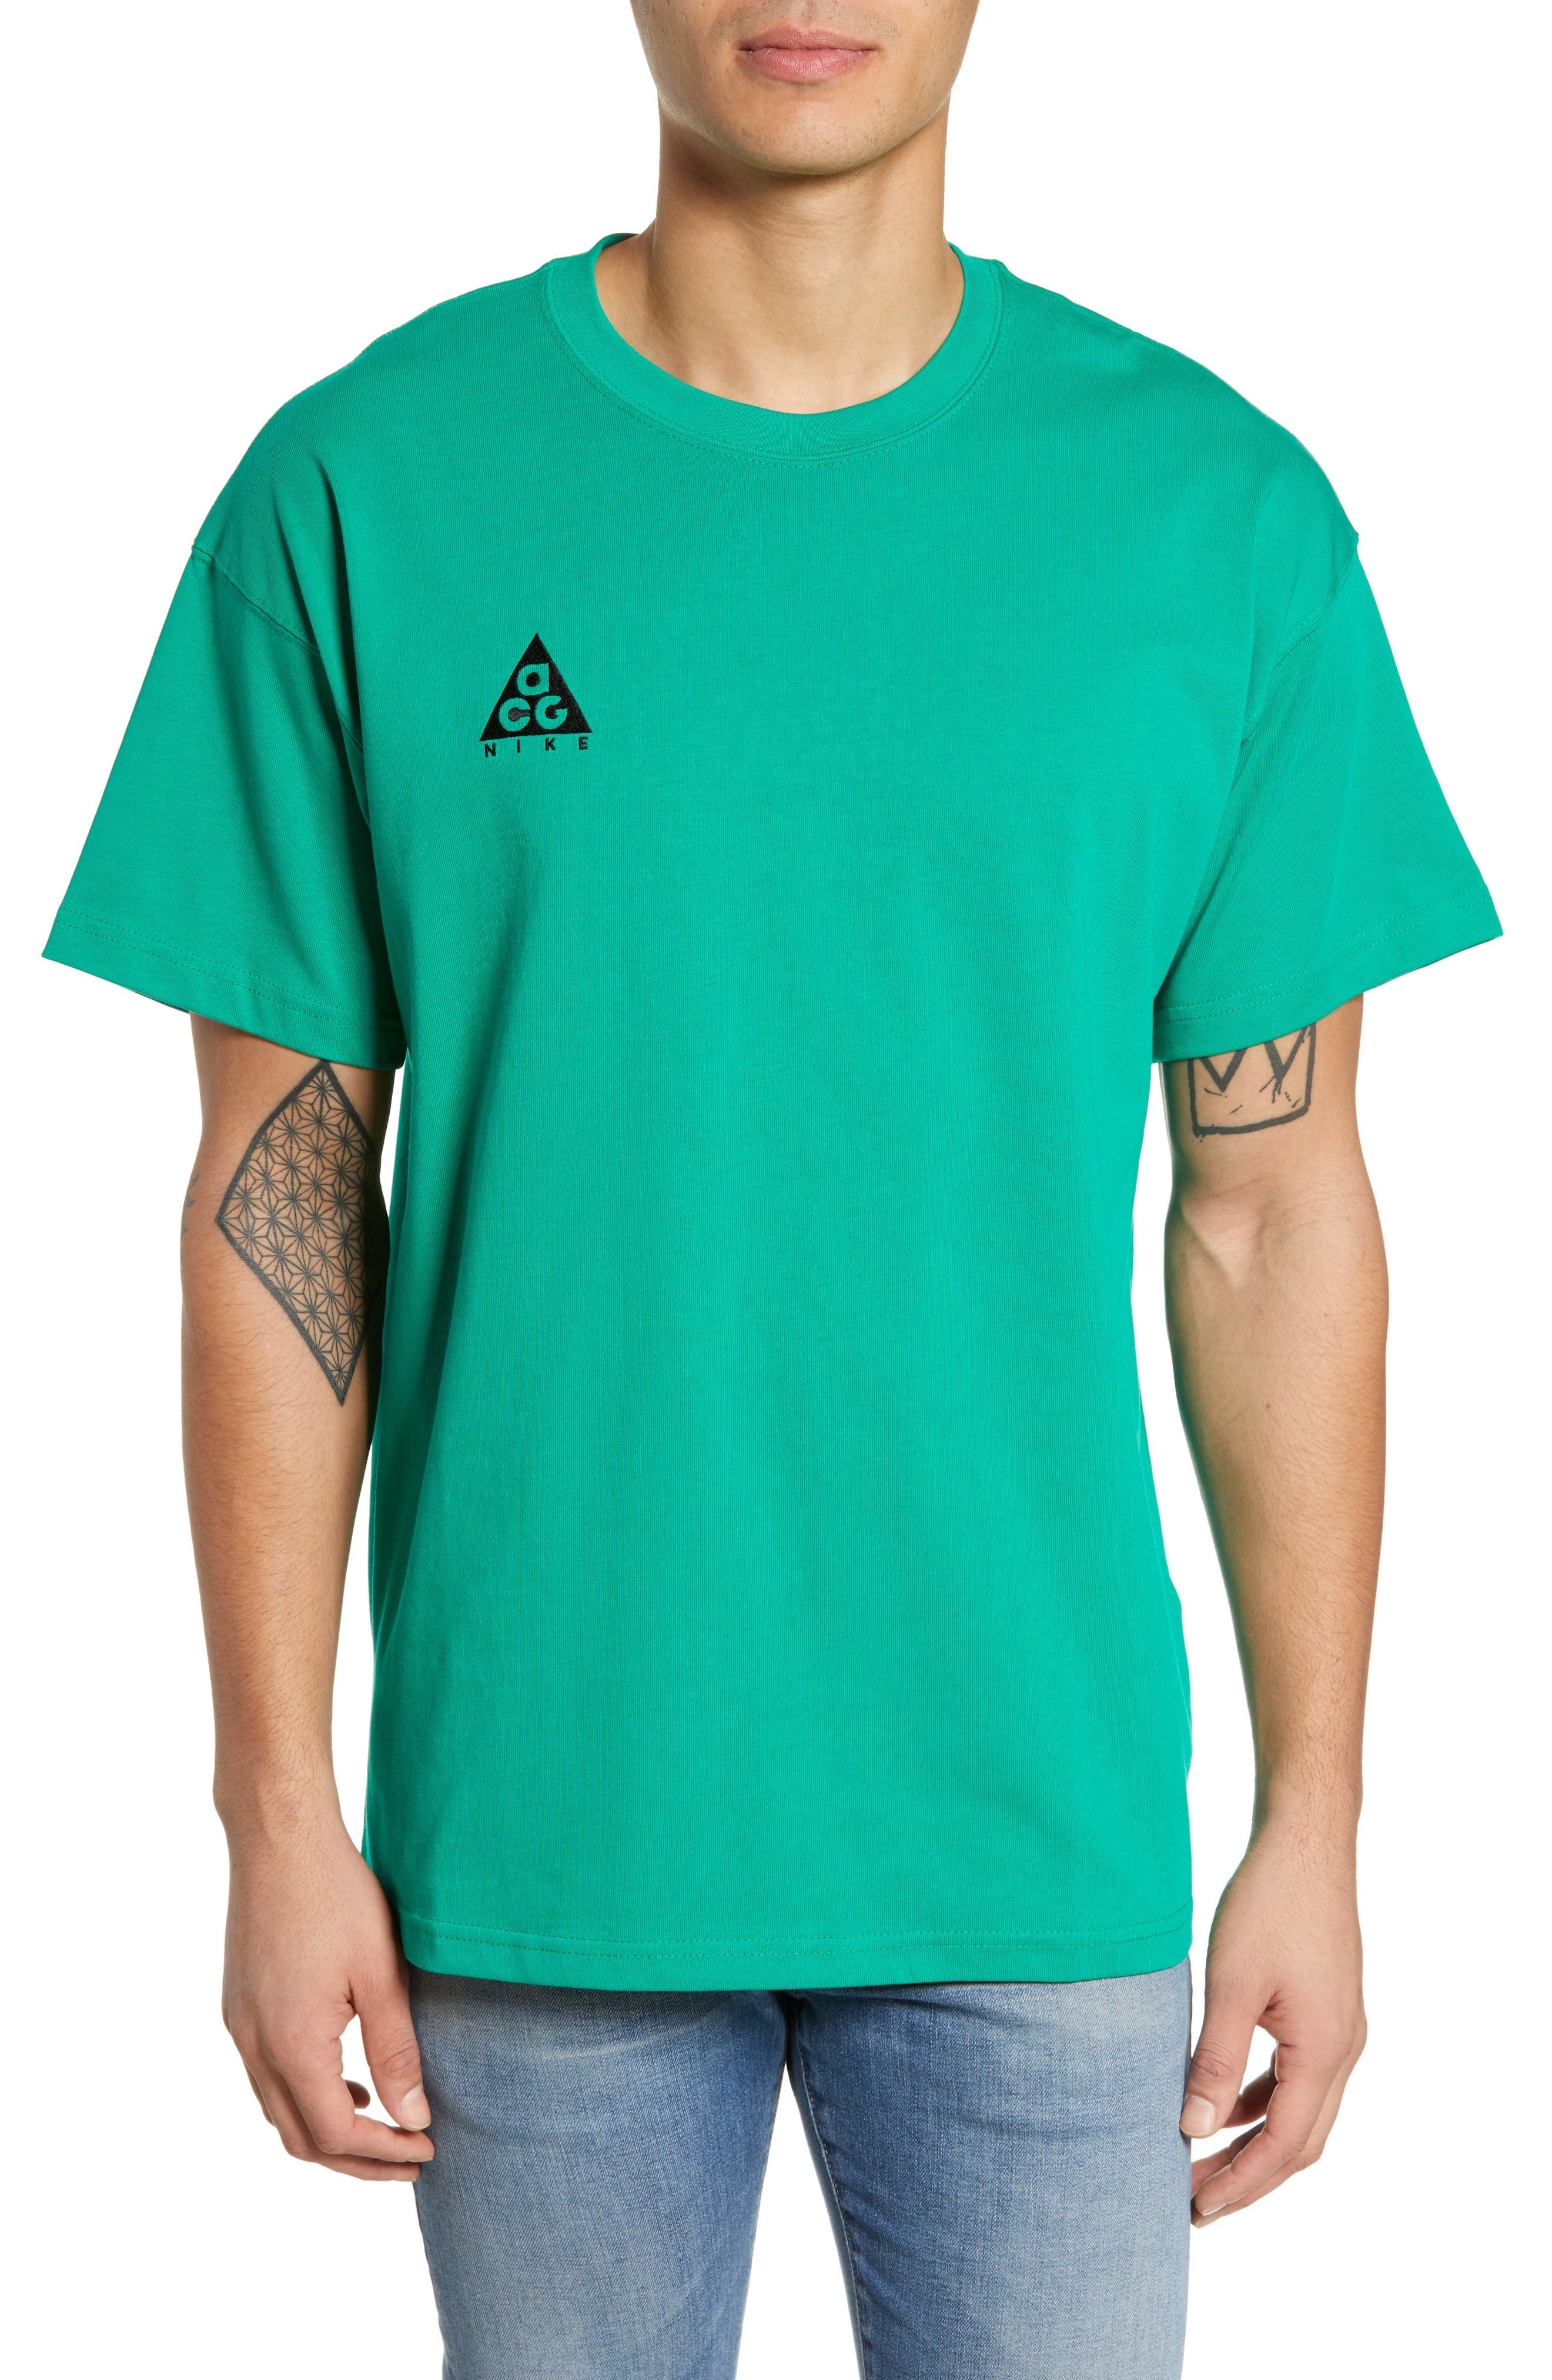 Nike Nrg All Conditions Gear Logo T-Shirt, Green